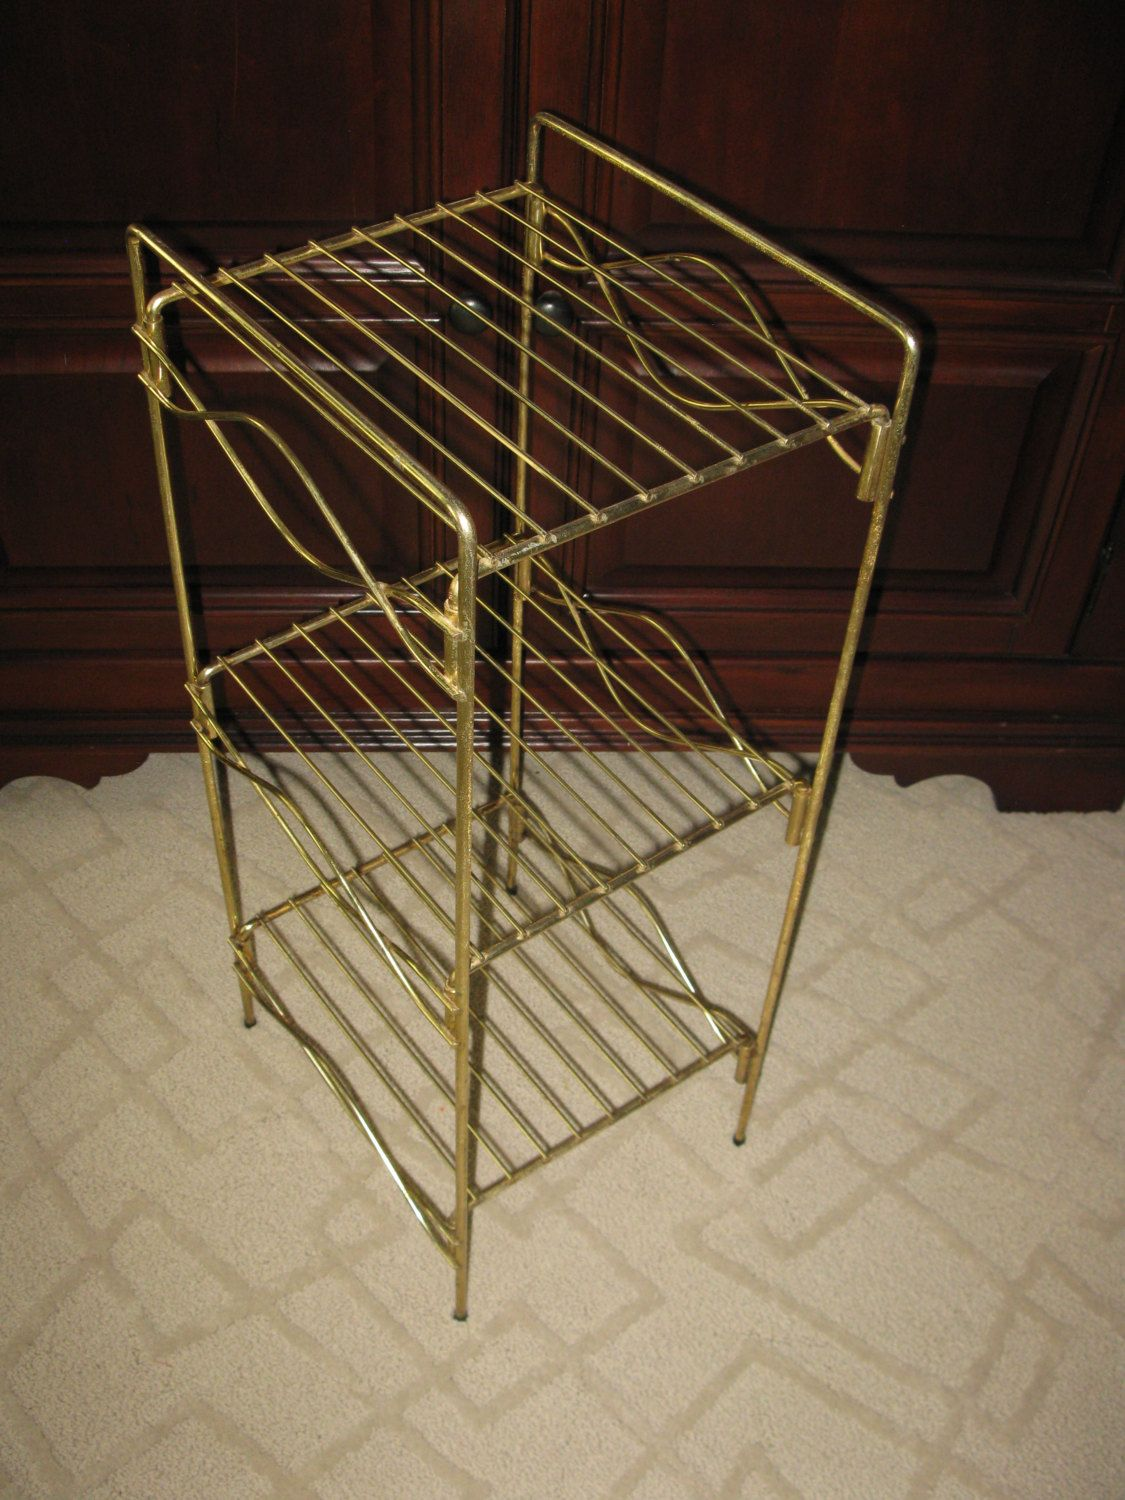 Mid Century Plant Stand Vintage Metal Stand Gold Tone Mid Century Stand 3 Tier Sturdy